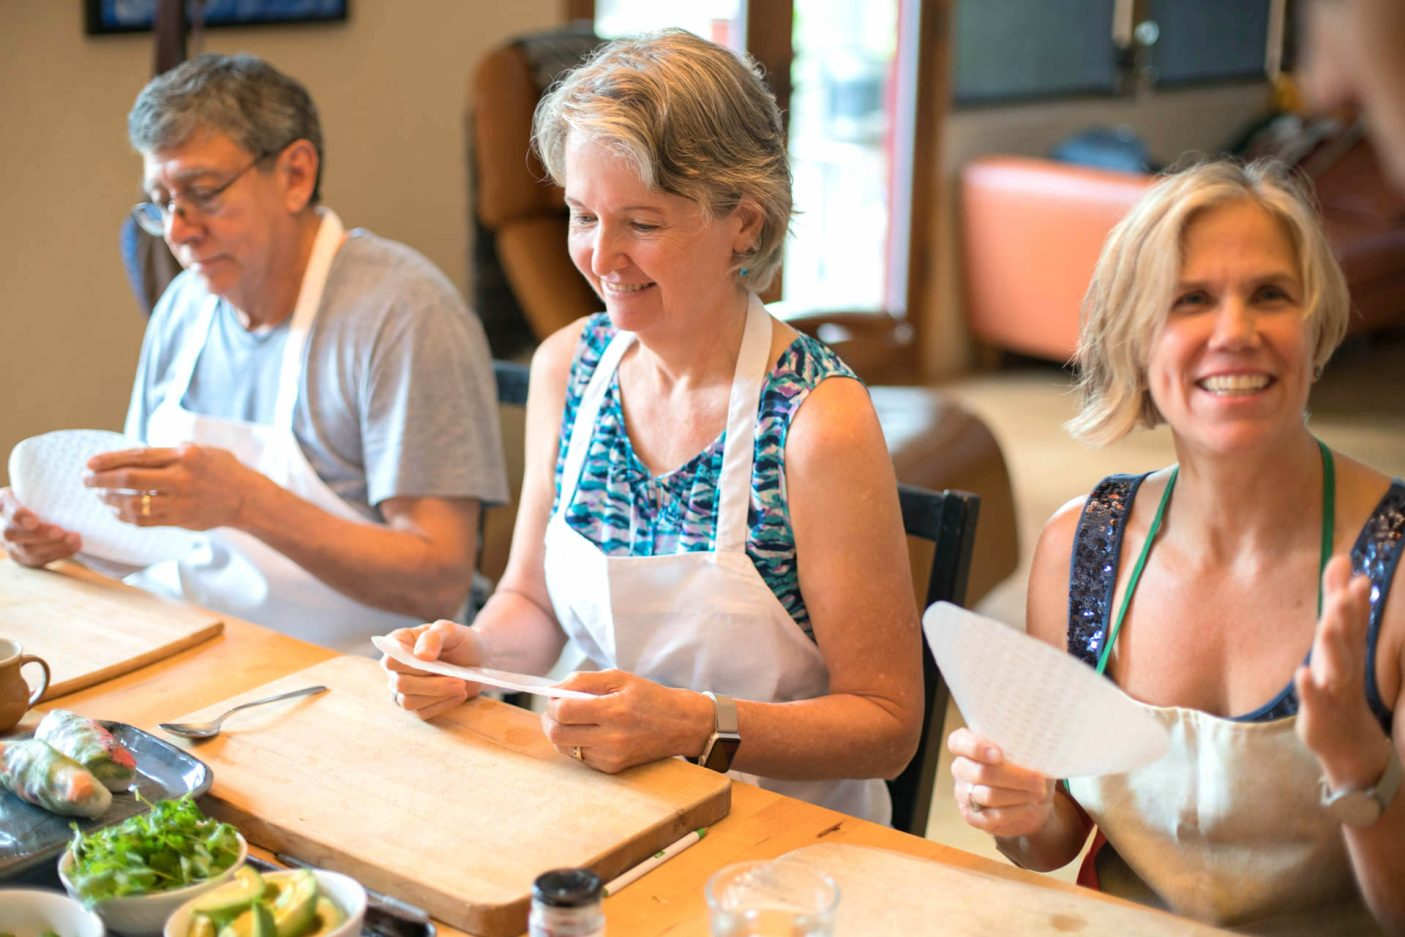 Healthy Cooking Classes in Austin, Texas